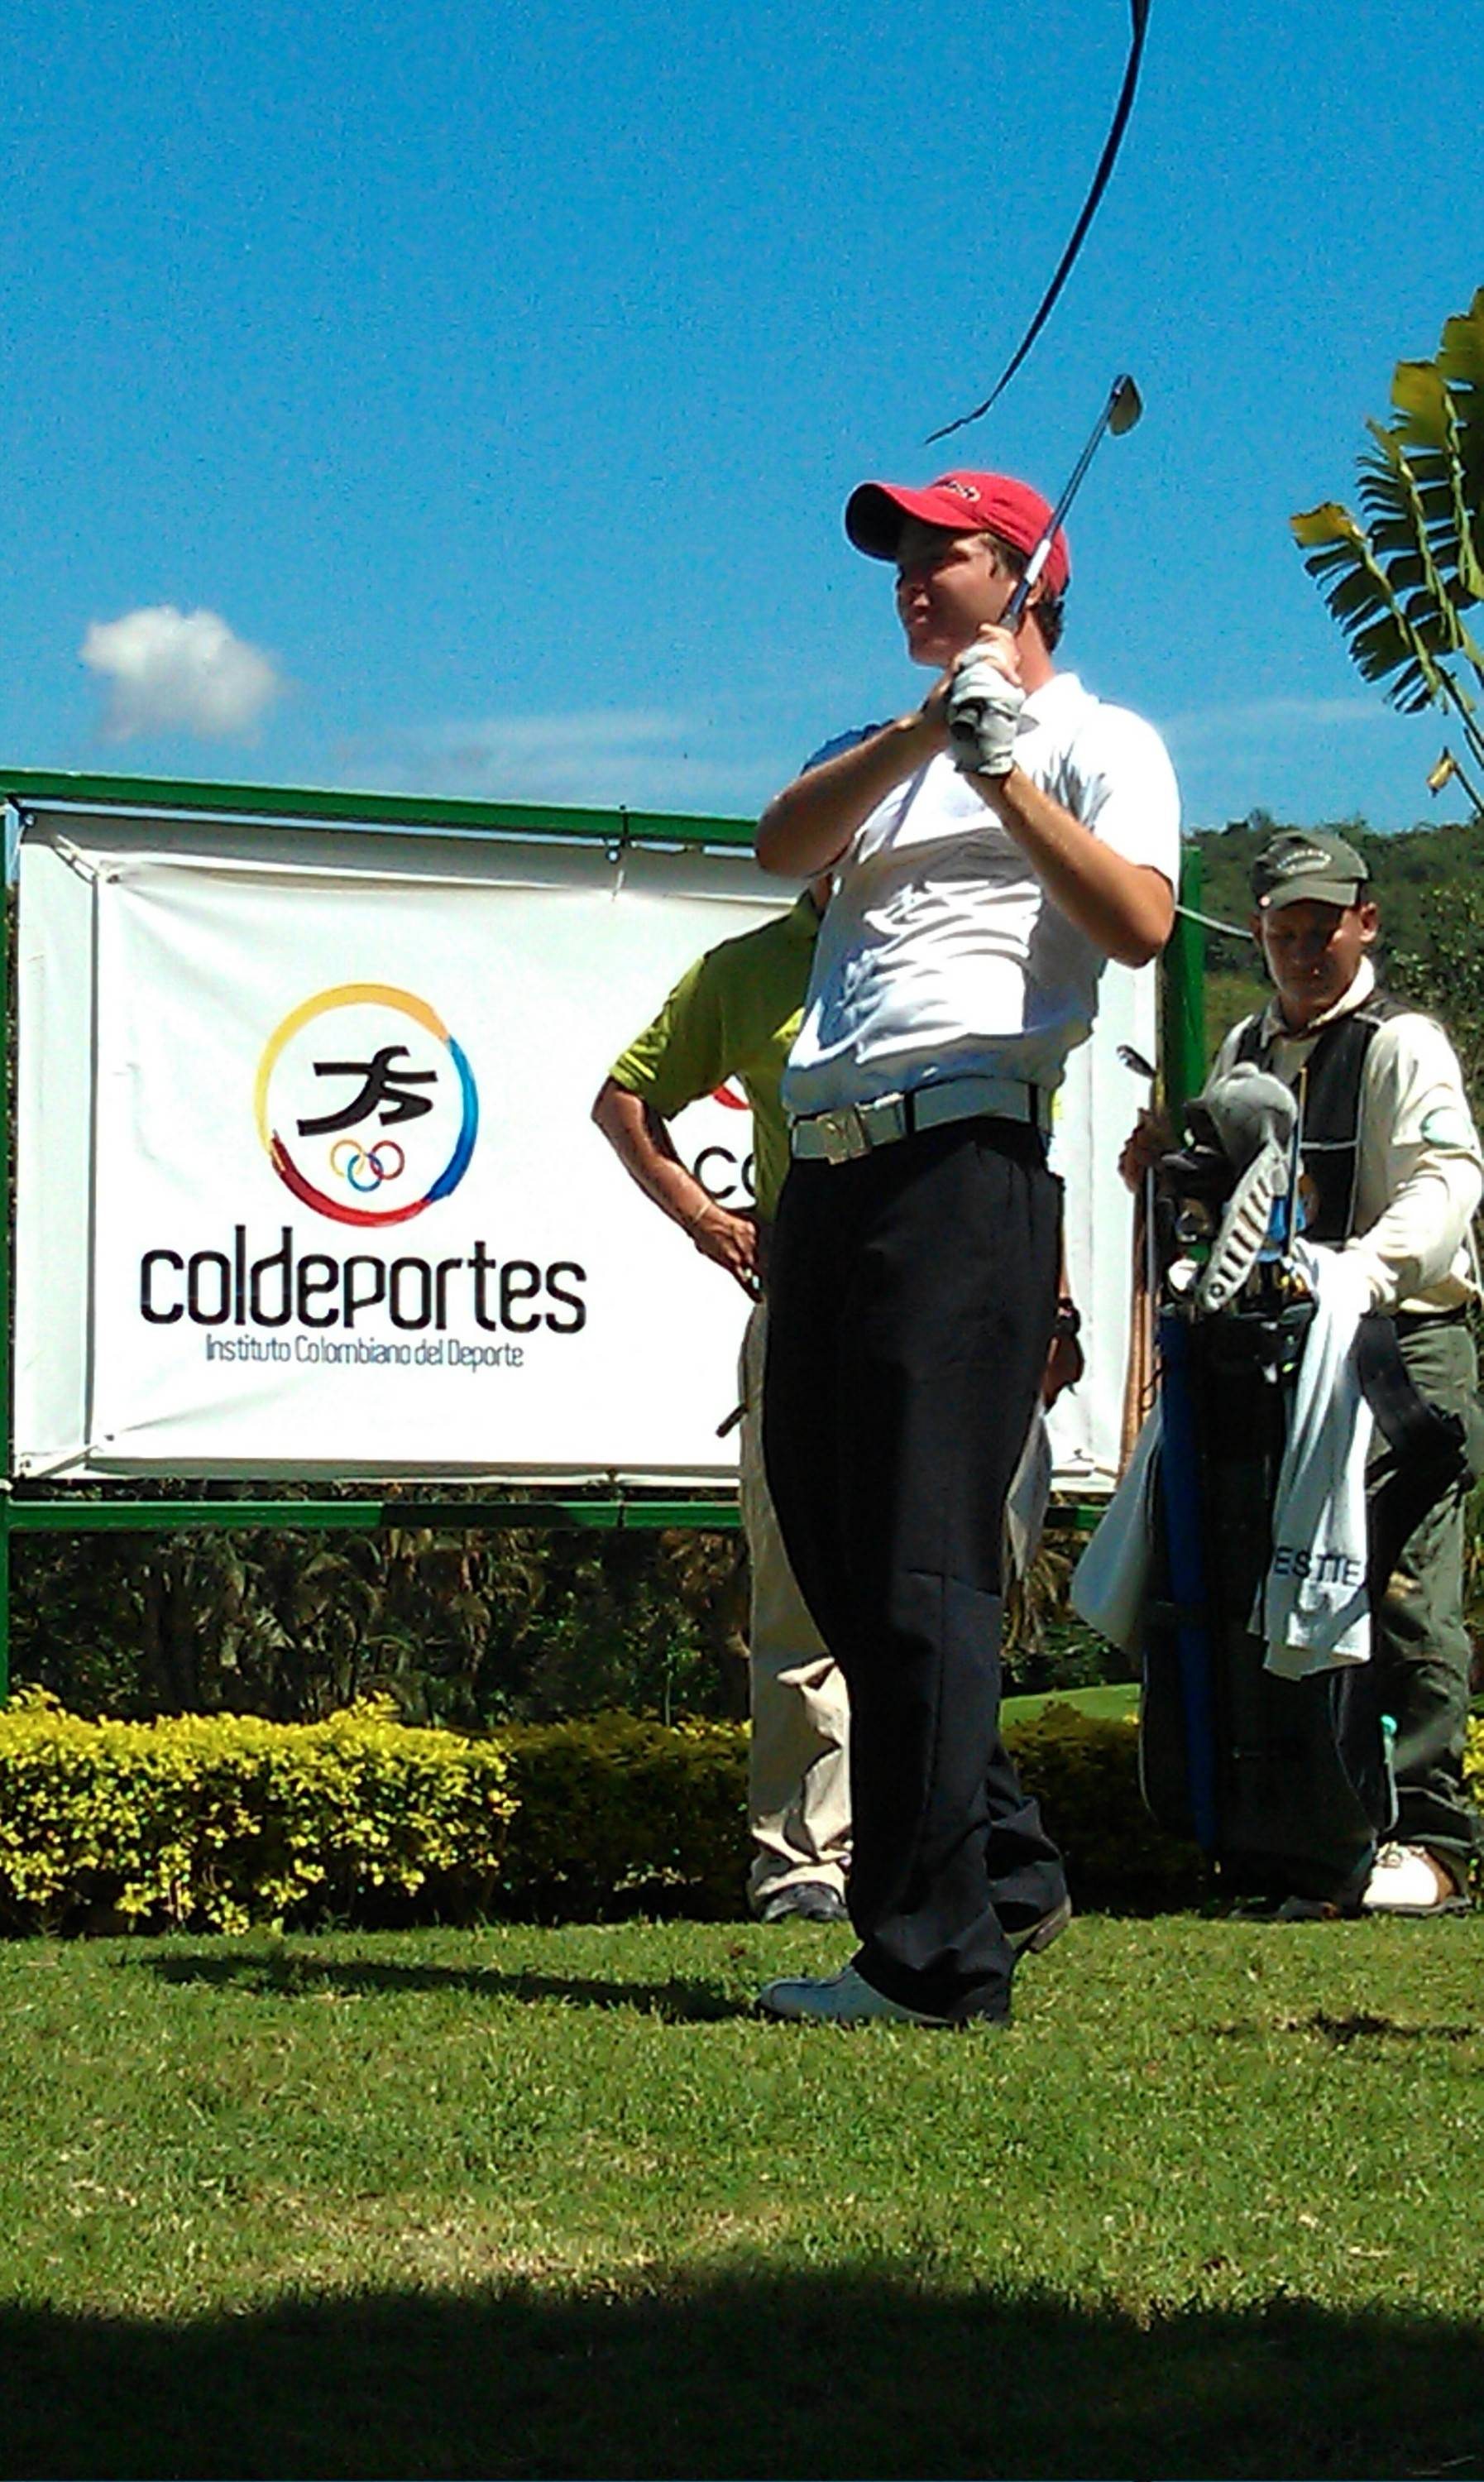 Joaquin Lolas at 2011 South American Am